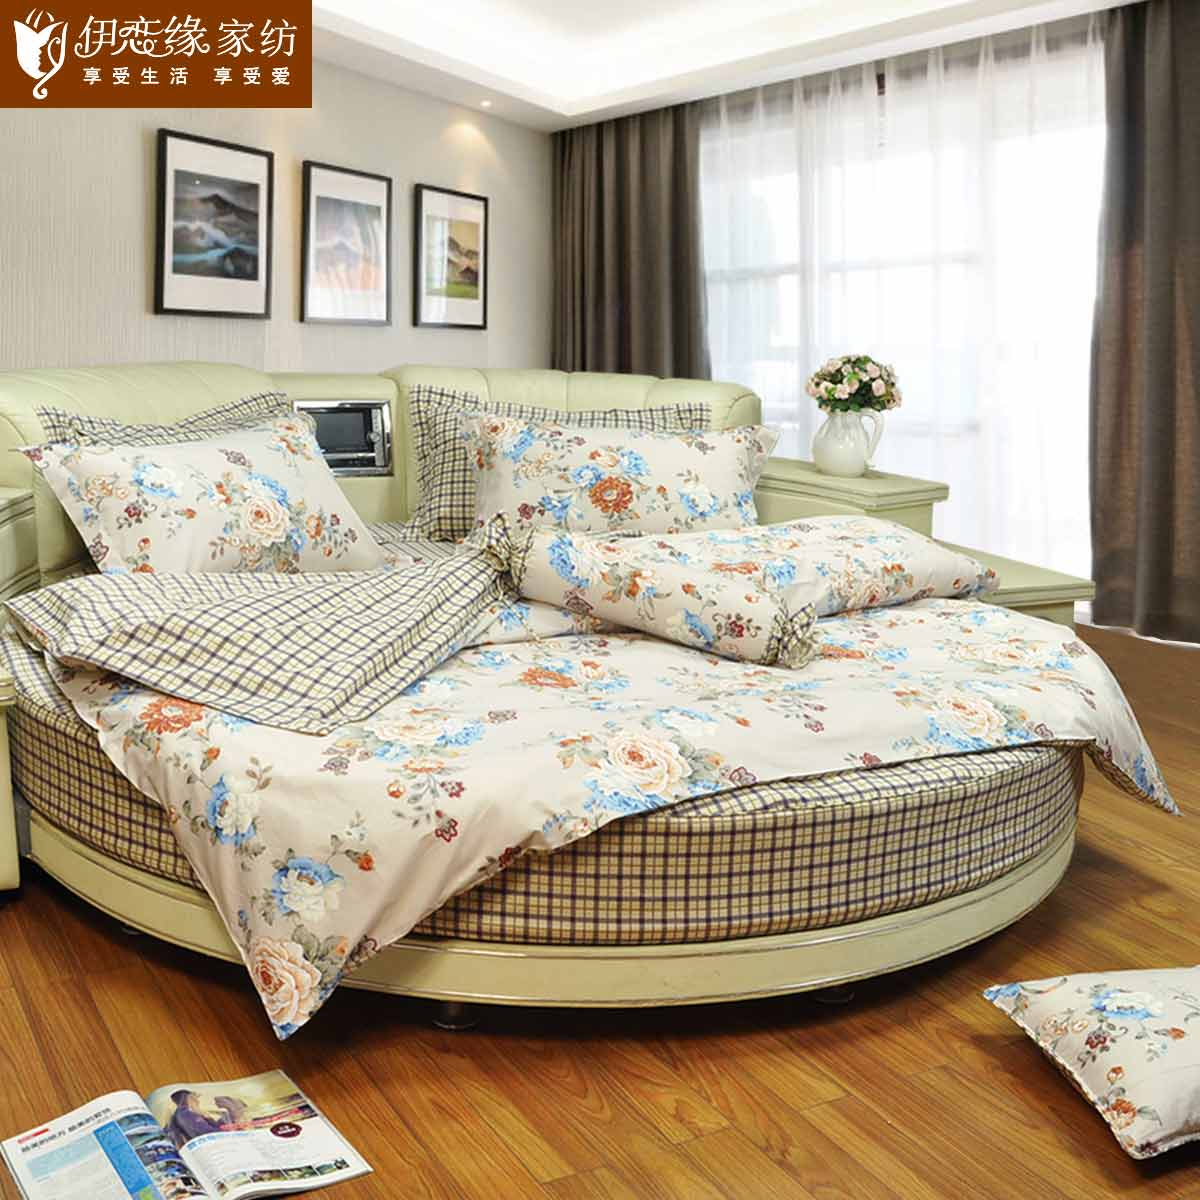 Love iraqi edge custom casual pastoral style retro round round bed bedding bed li family of four warm fragrant fleeting